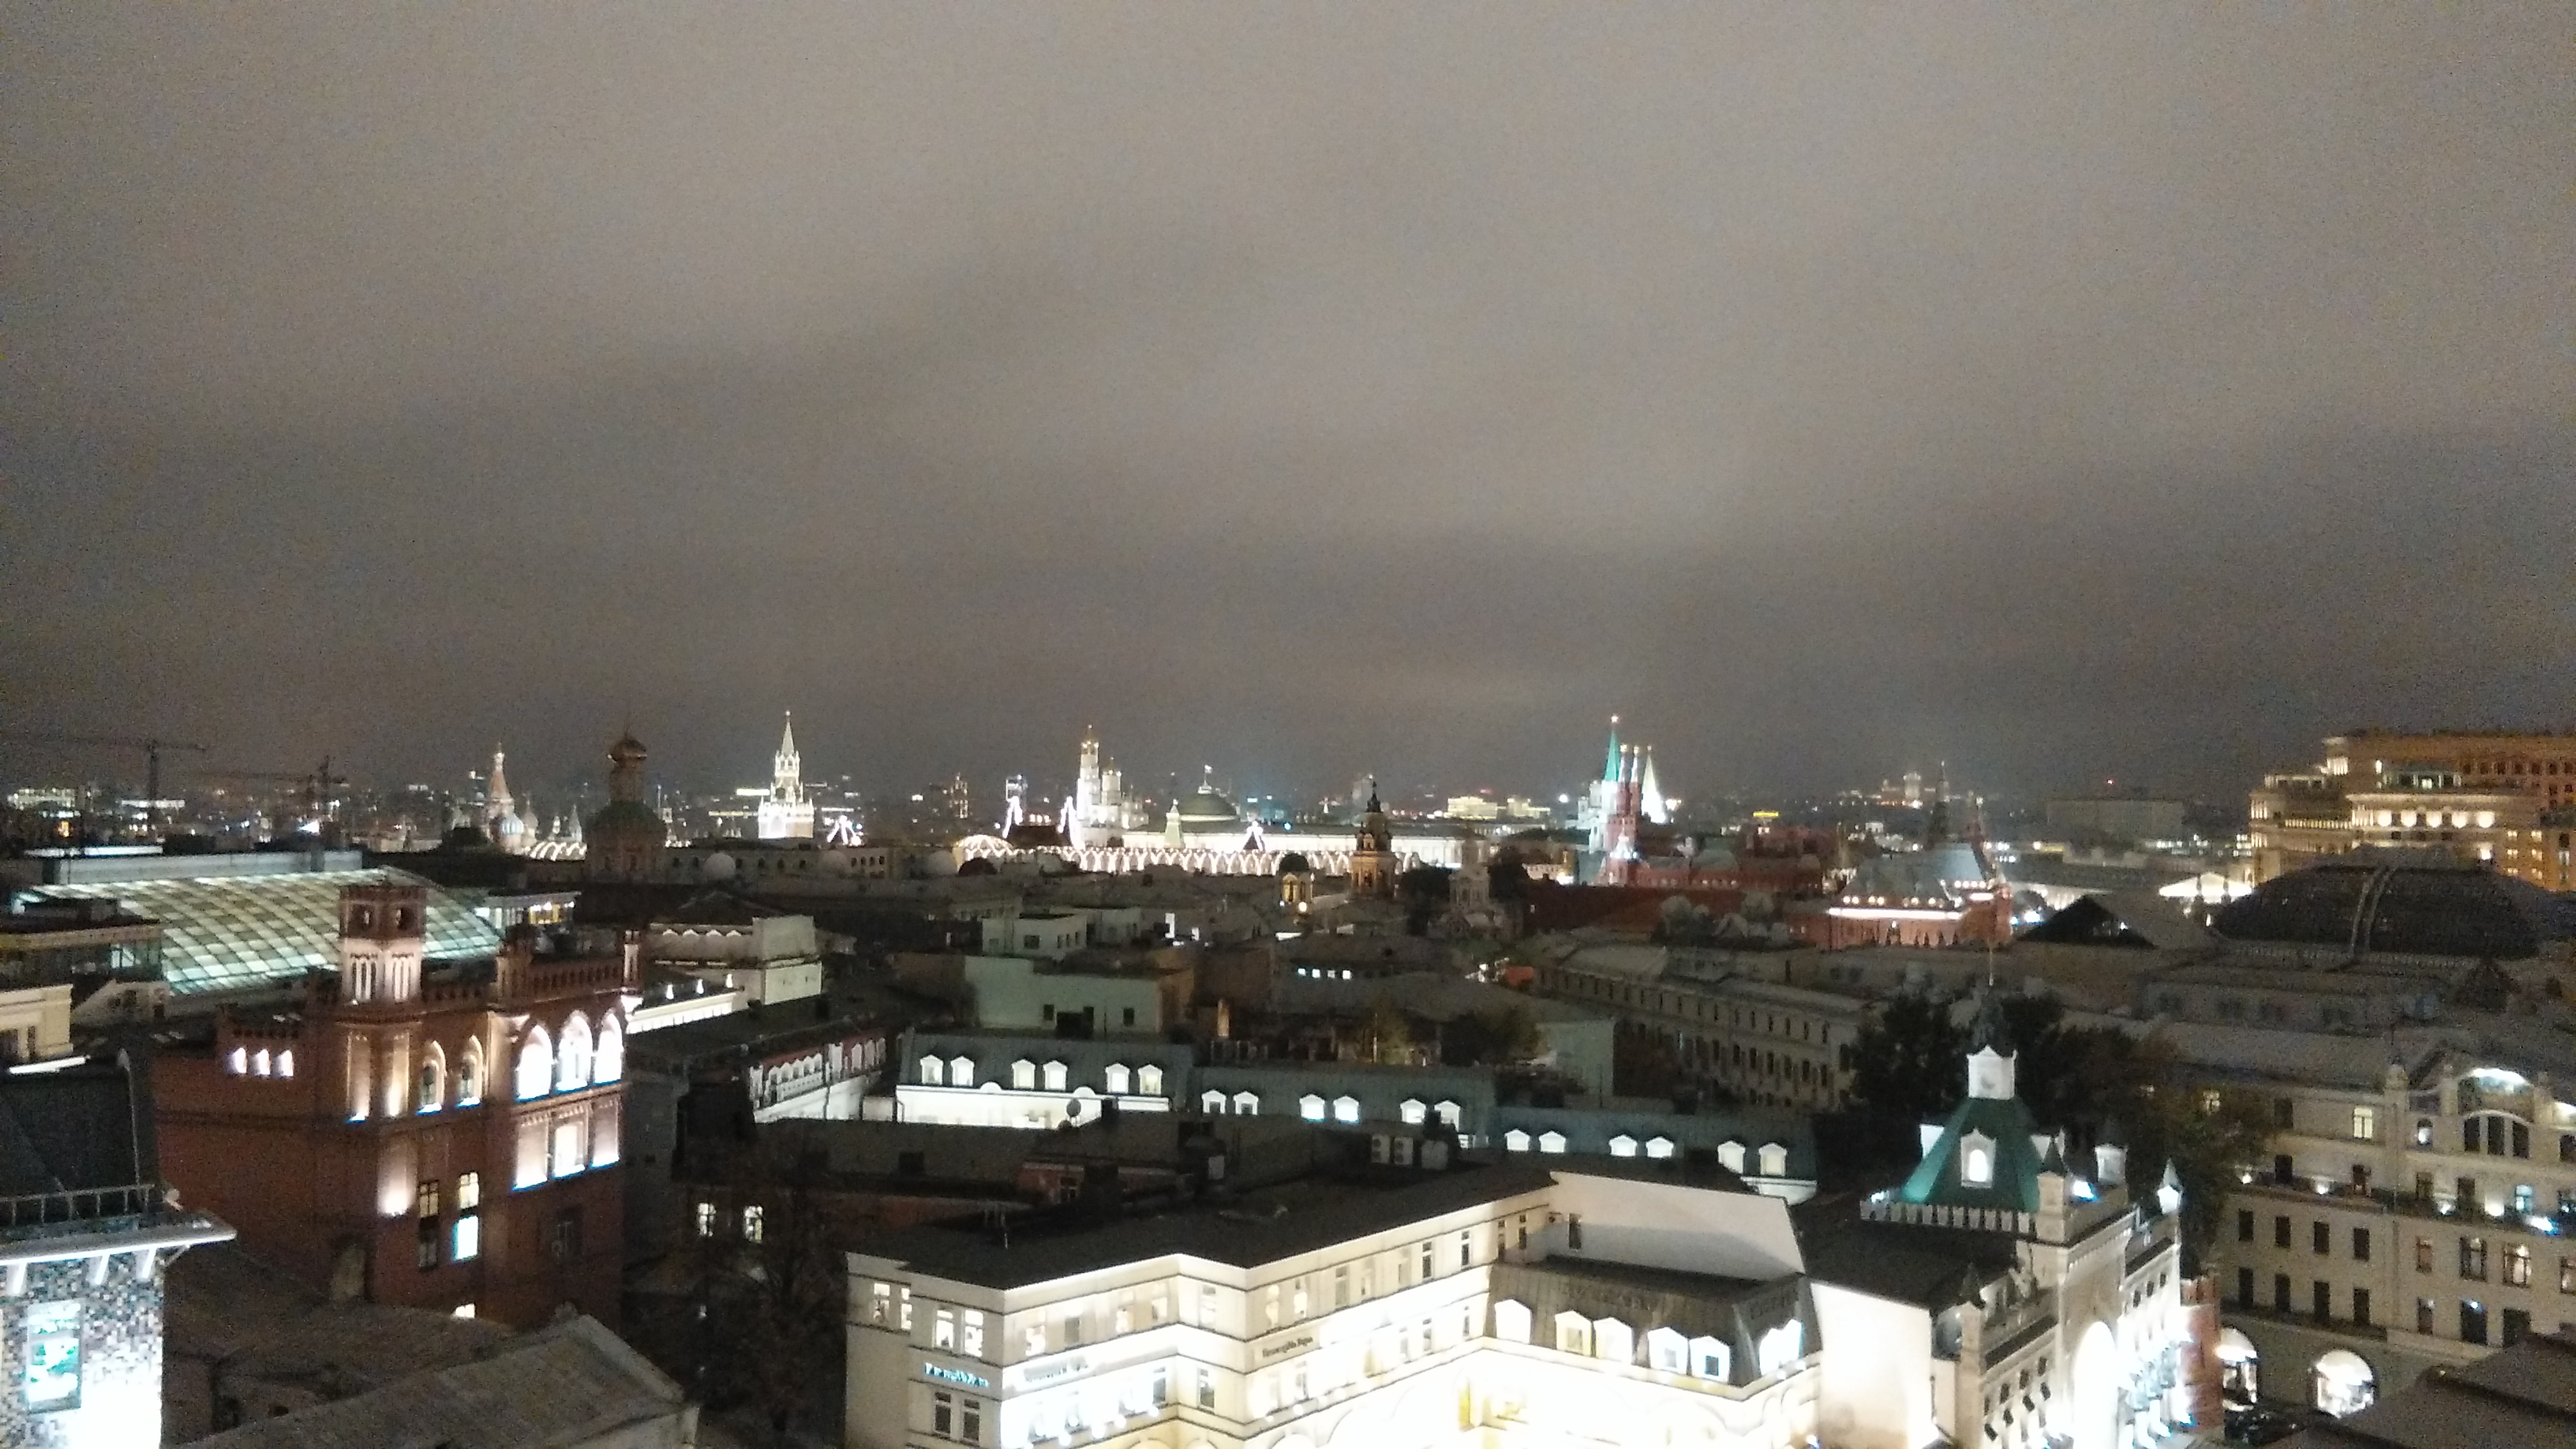 Moscow ar night - Kremlin in the distance